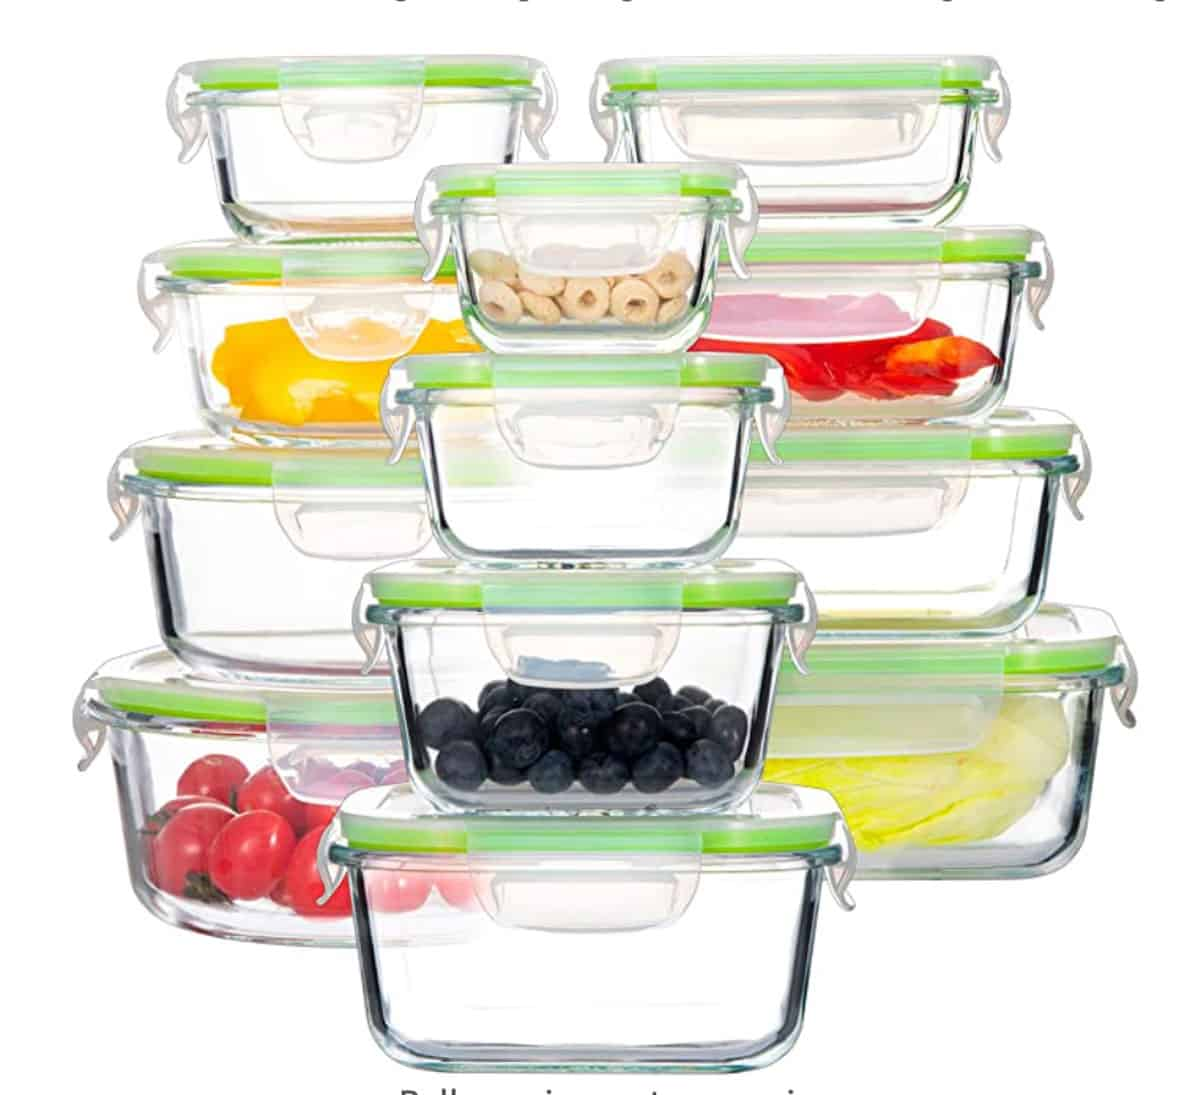 Set of 12 glass storage containers with lids.